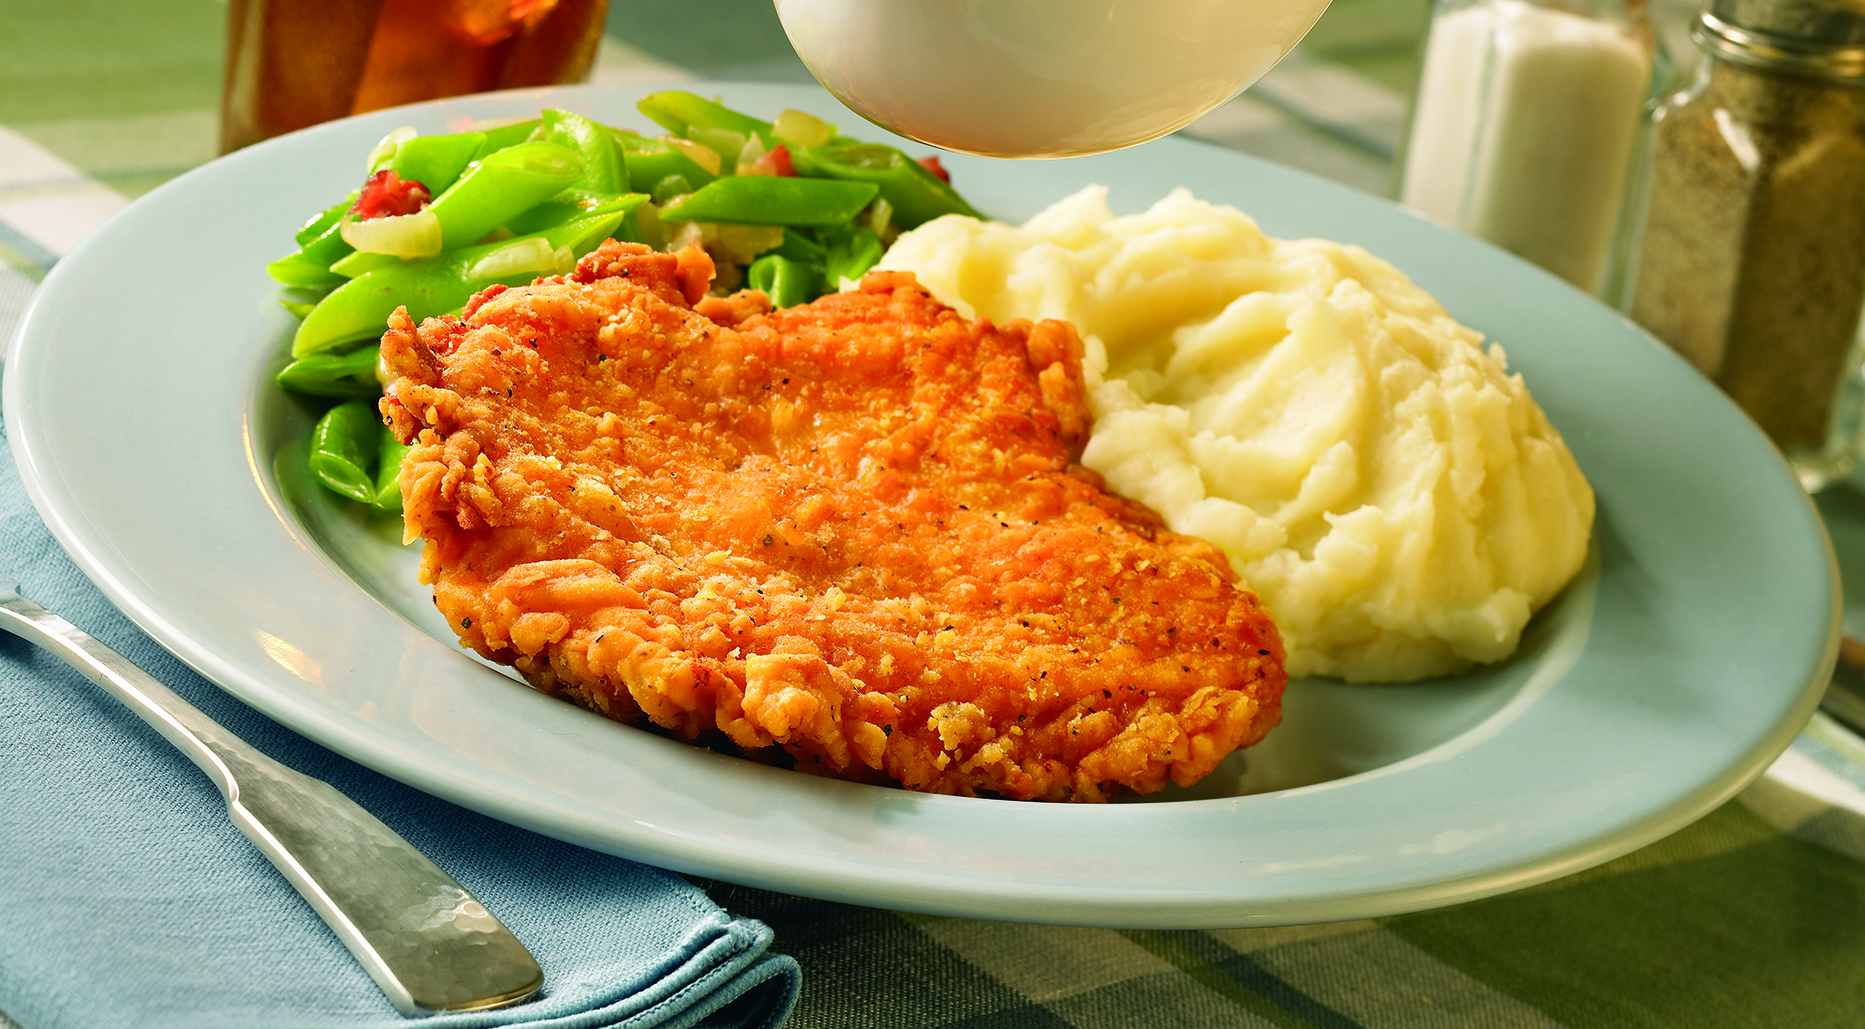 Breaded Breast Fillets, Fritter image